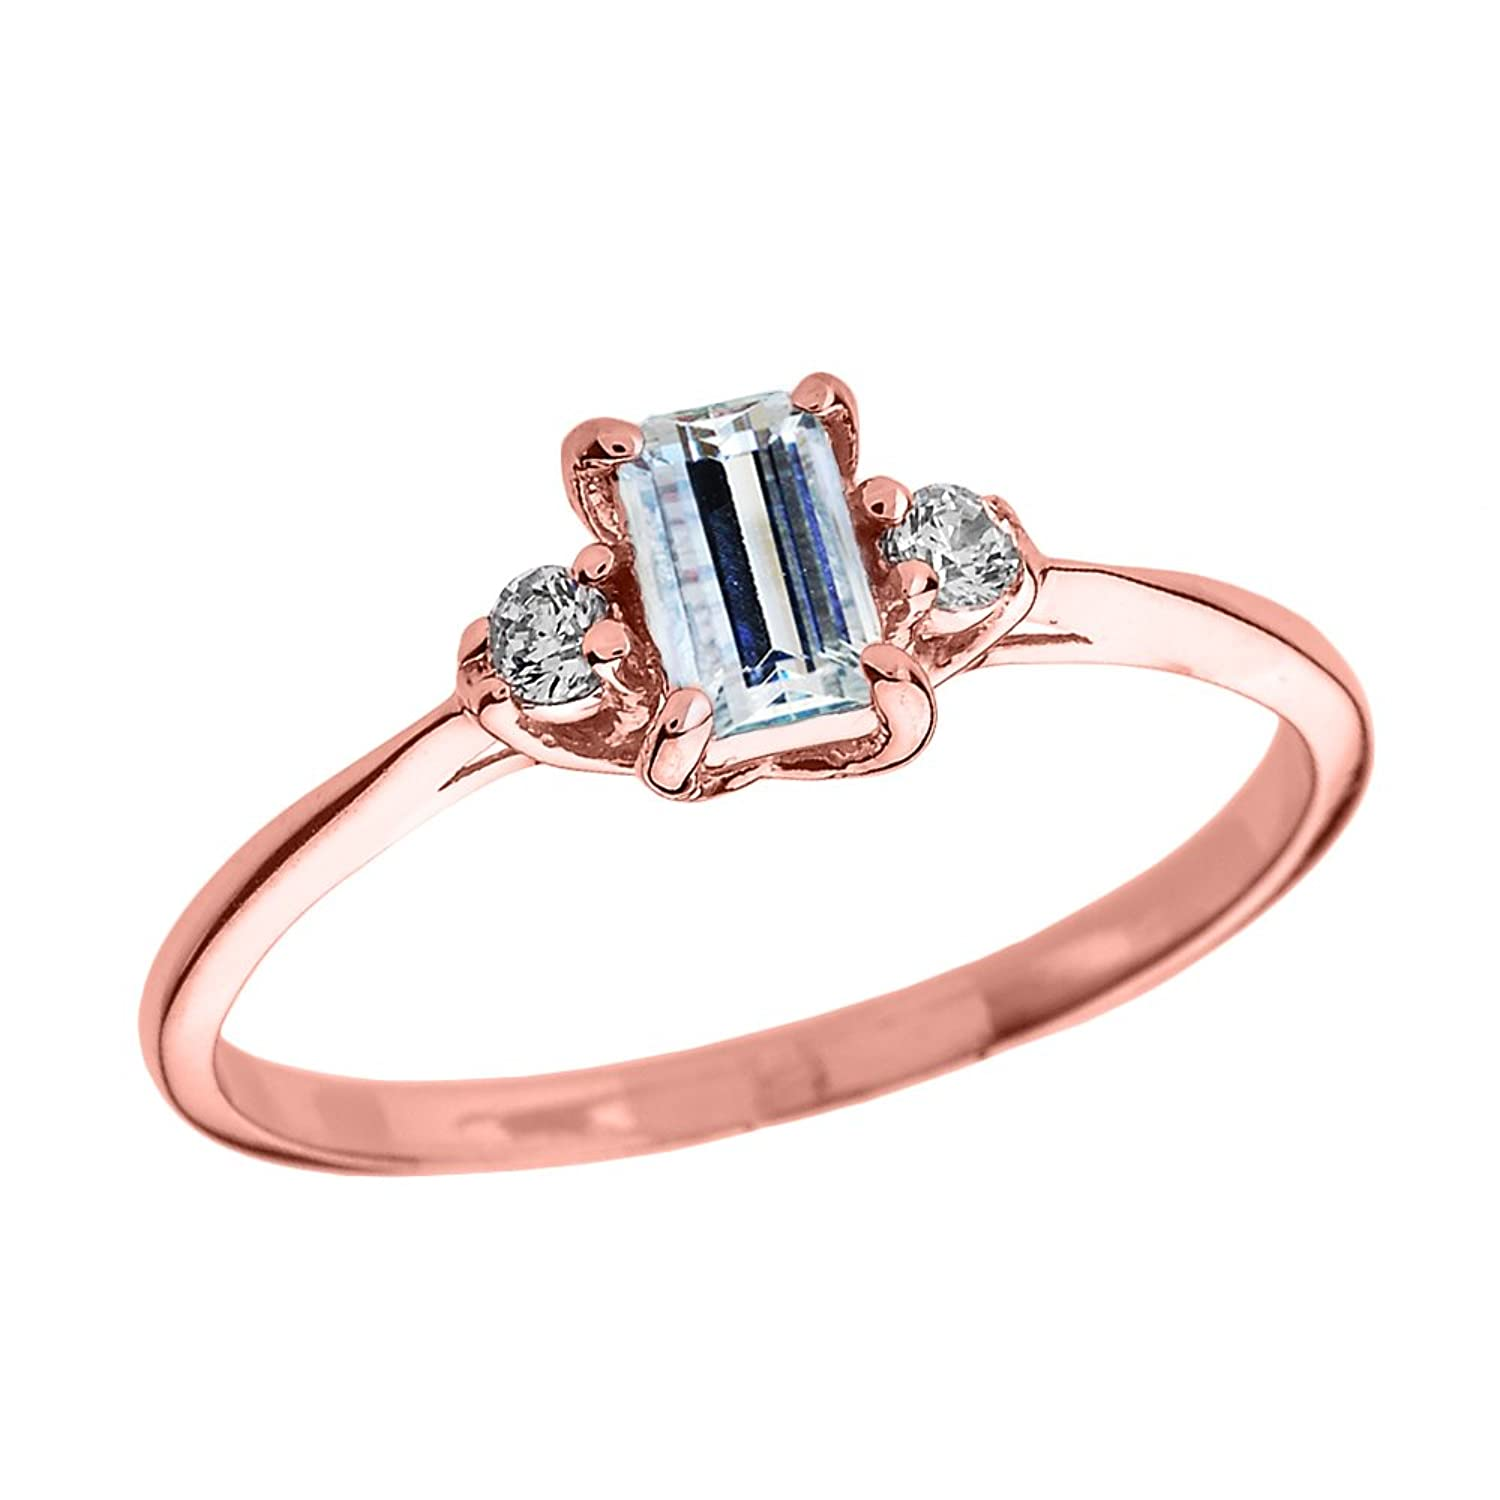 Solid 10k Rose Gold Diamond and Aquamarine Proposal and Birthstone Ring